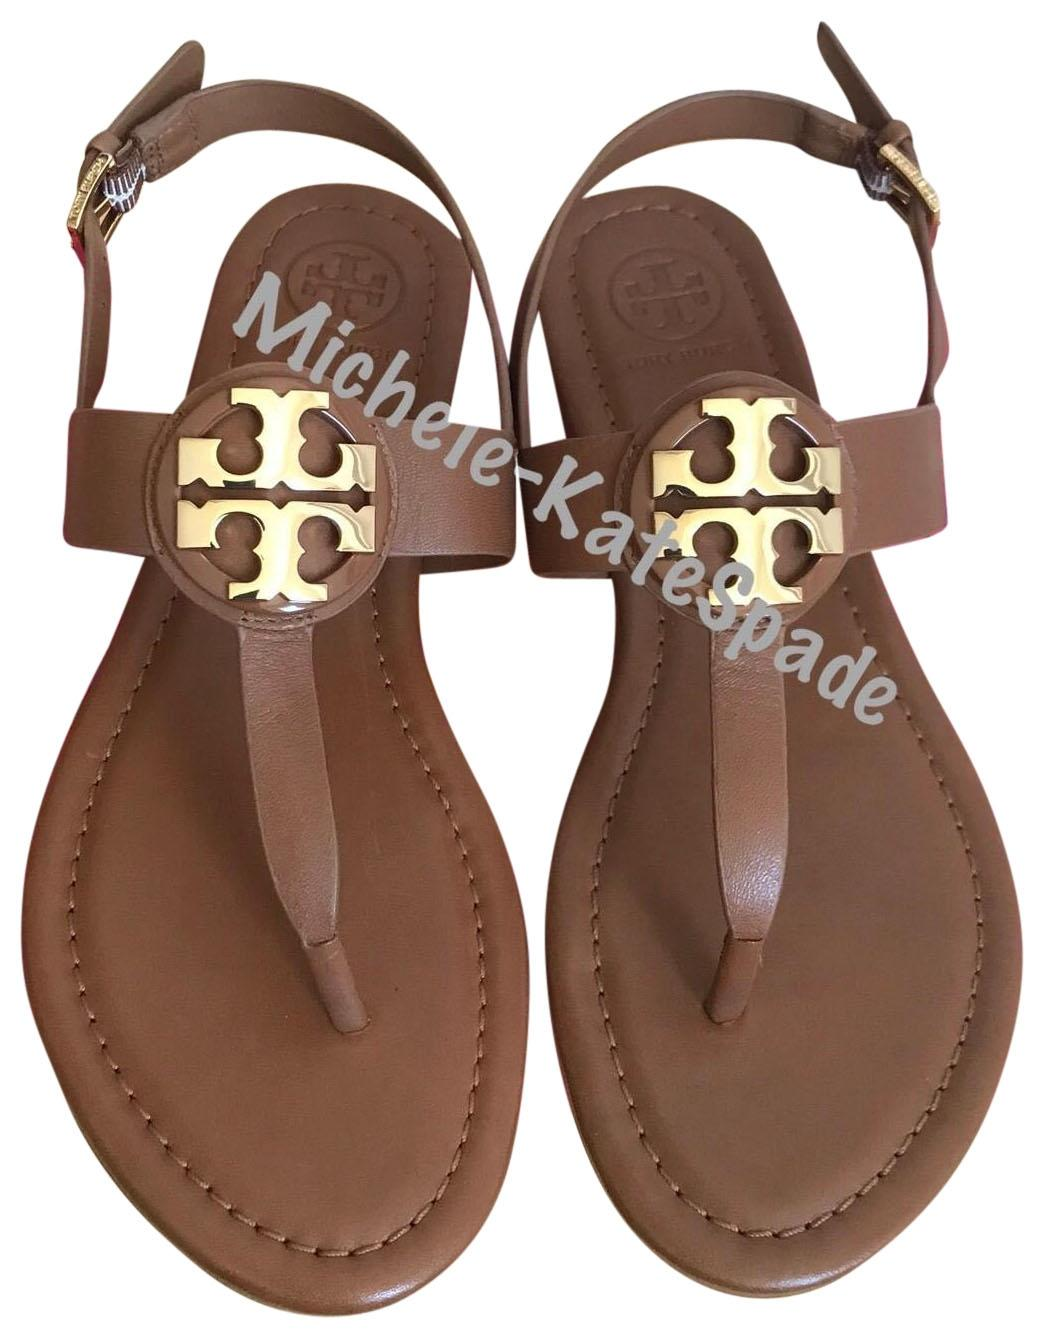 3c1db6c910c Tory Burch Brown Bryce Flat Thong Sandals Sandals Sandals Size US 6 Regular  (M